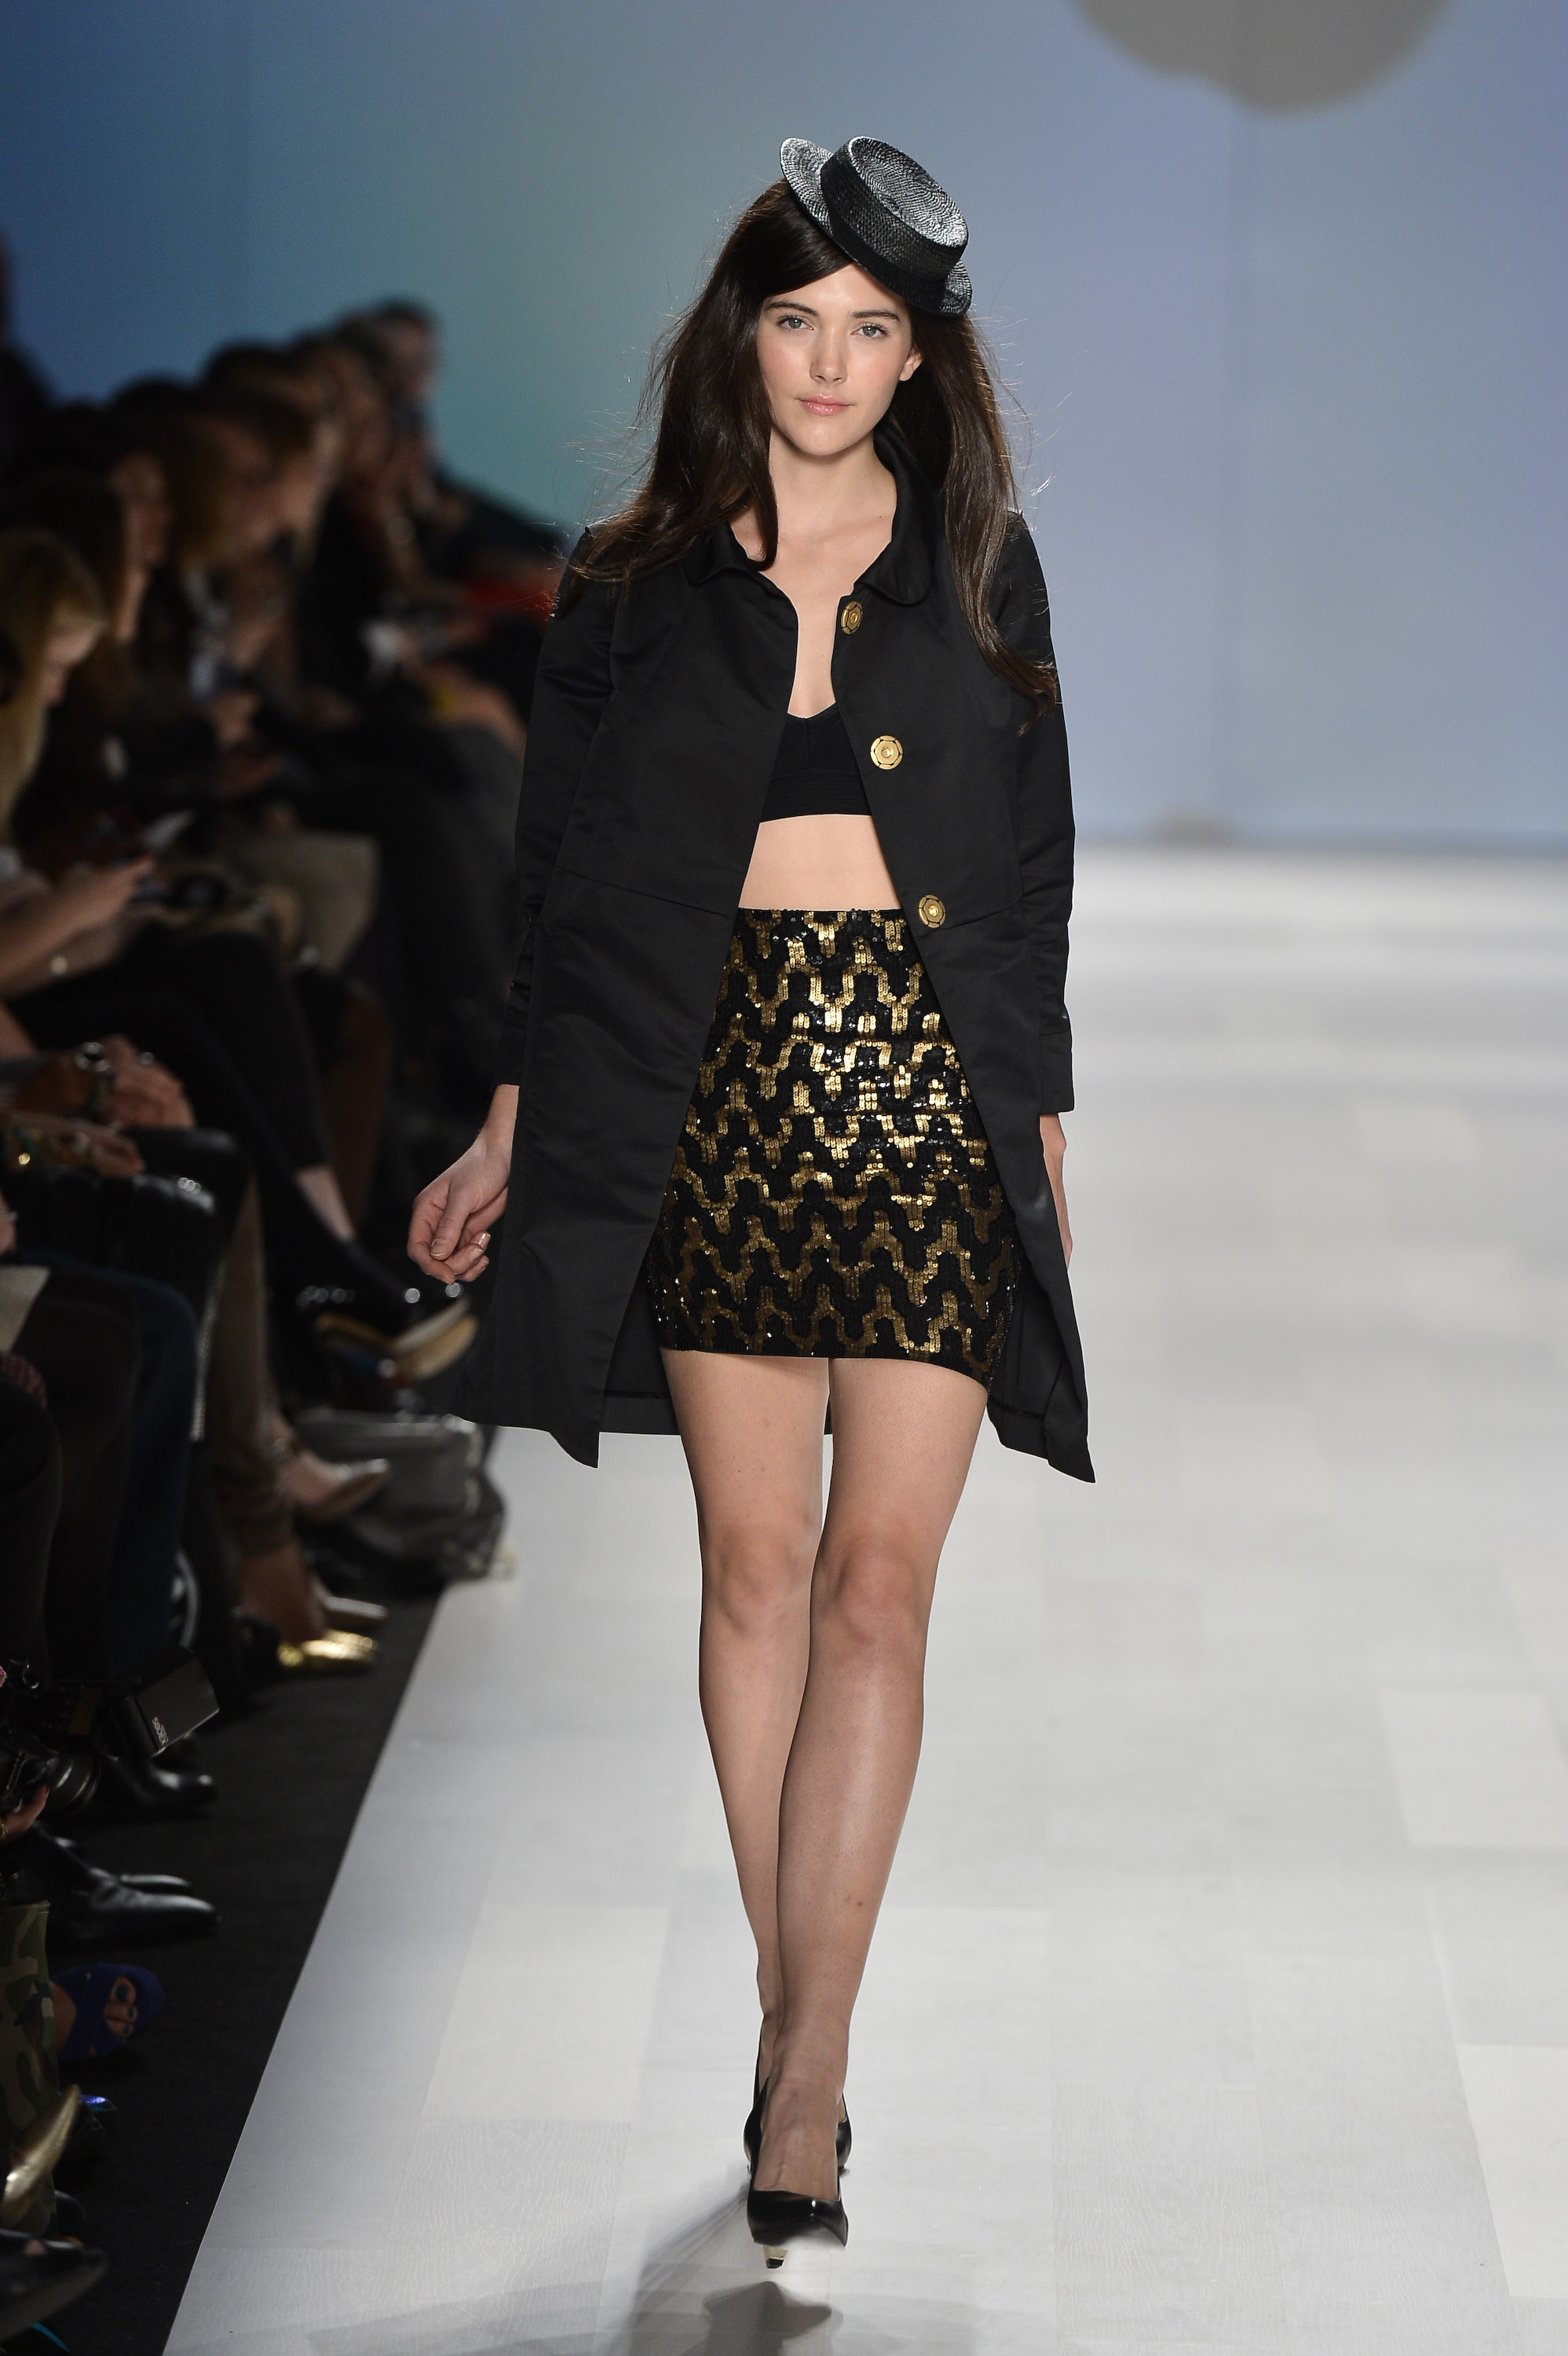 Toronto Fashion Week Fw13 Begins A Side Of Vogue